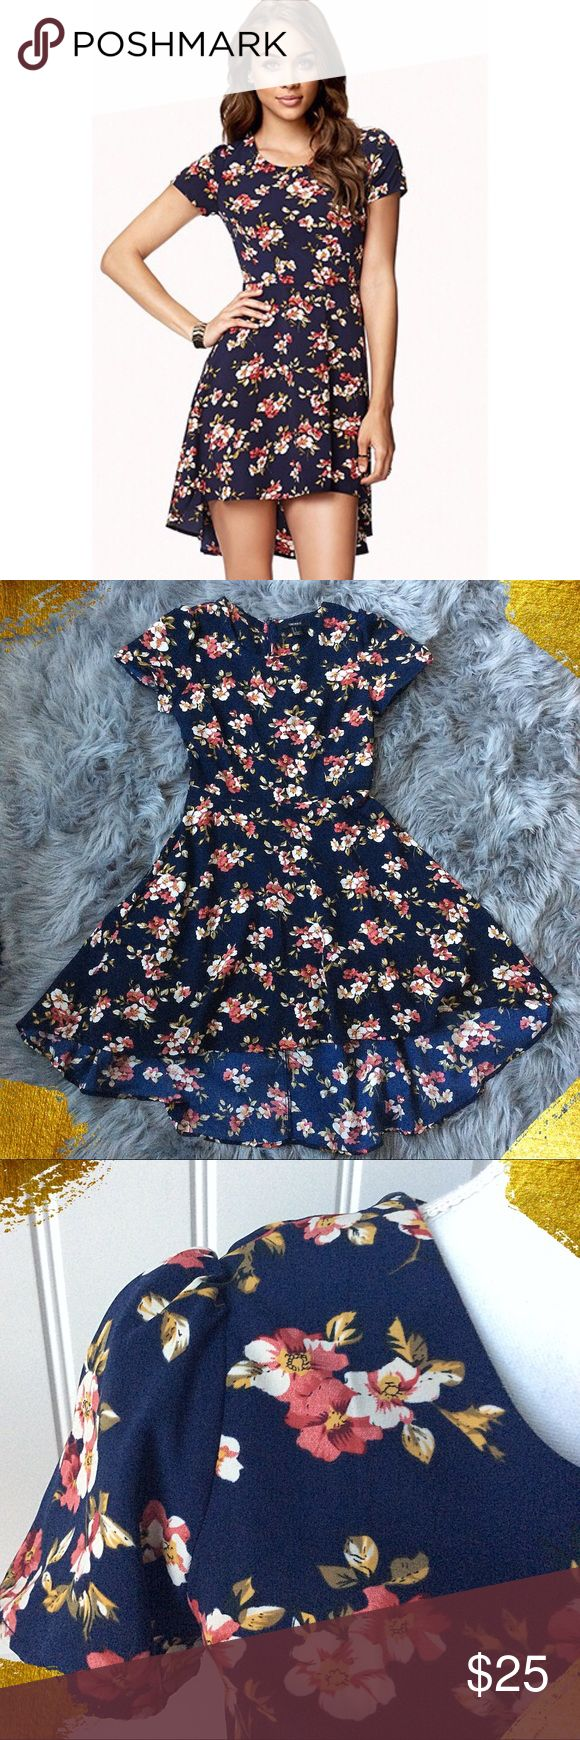 Adorable Floral High Low Dress Adorable navy high low dress with vintage floral print.  Gathered capped sleeves.  Hidden back zipper.  Pretty pleated detailing in the back.  High low hemline.  In fantastic condition! Forever 21 Dresses